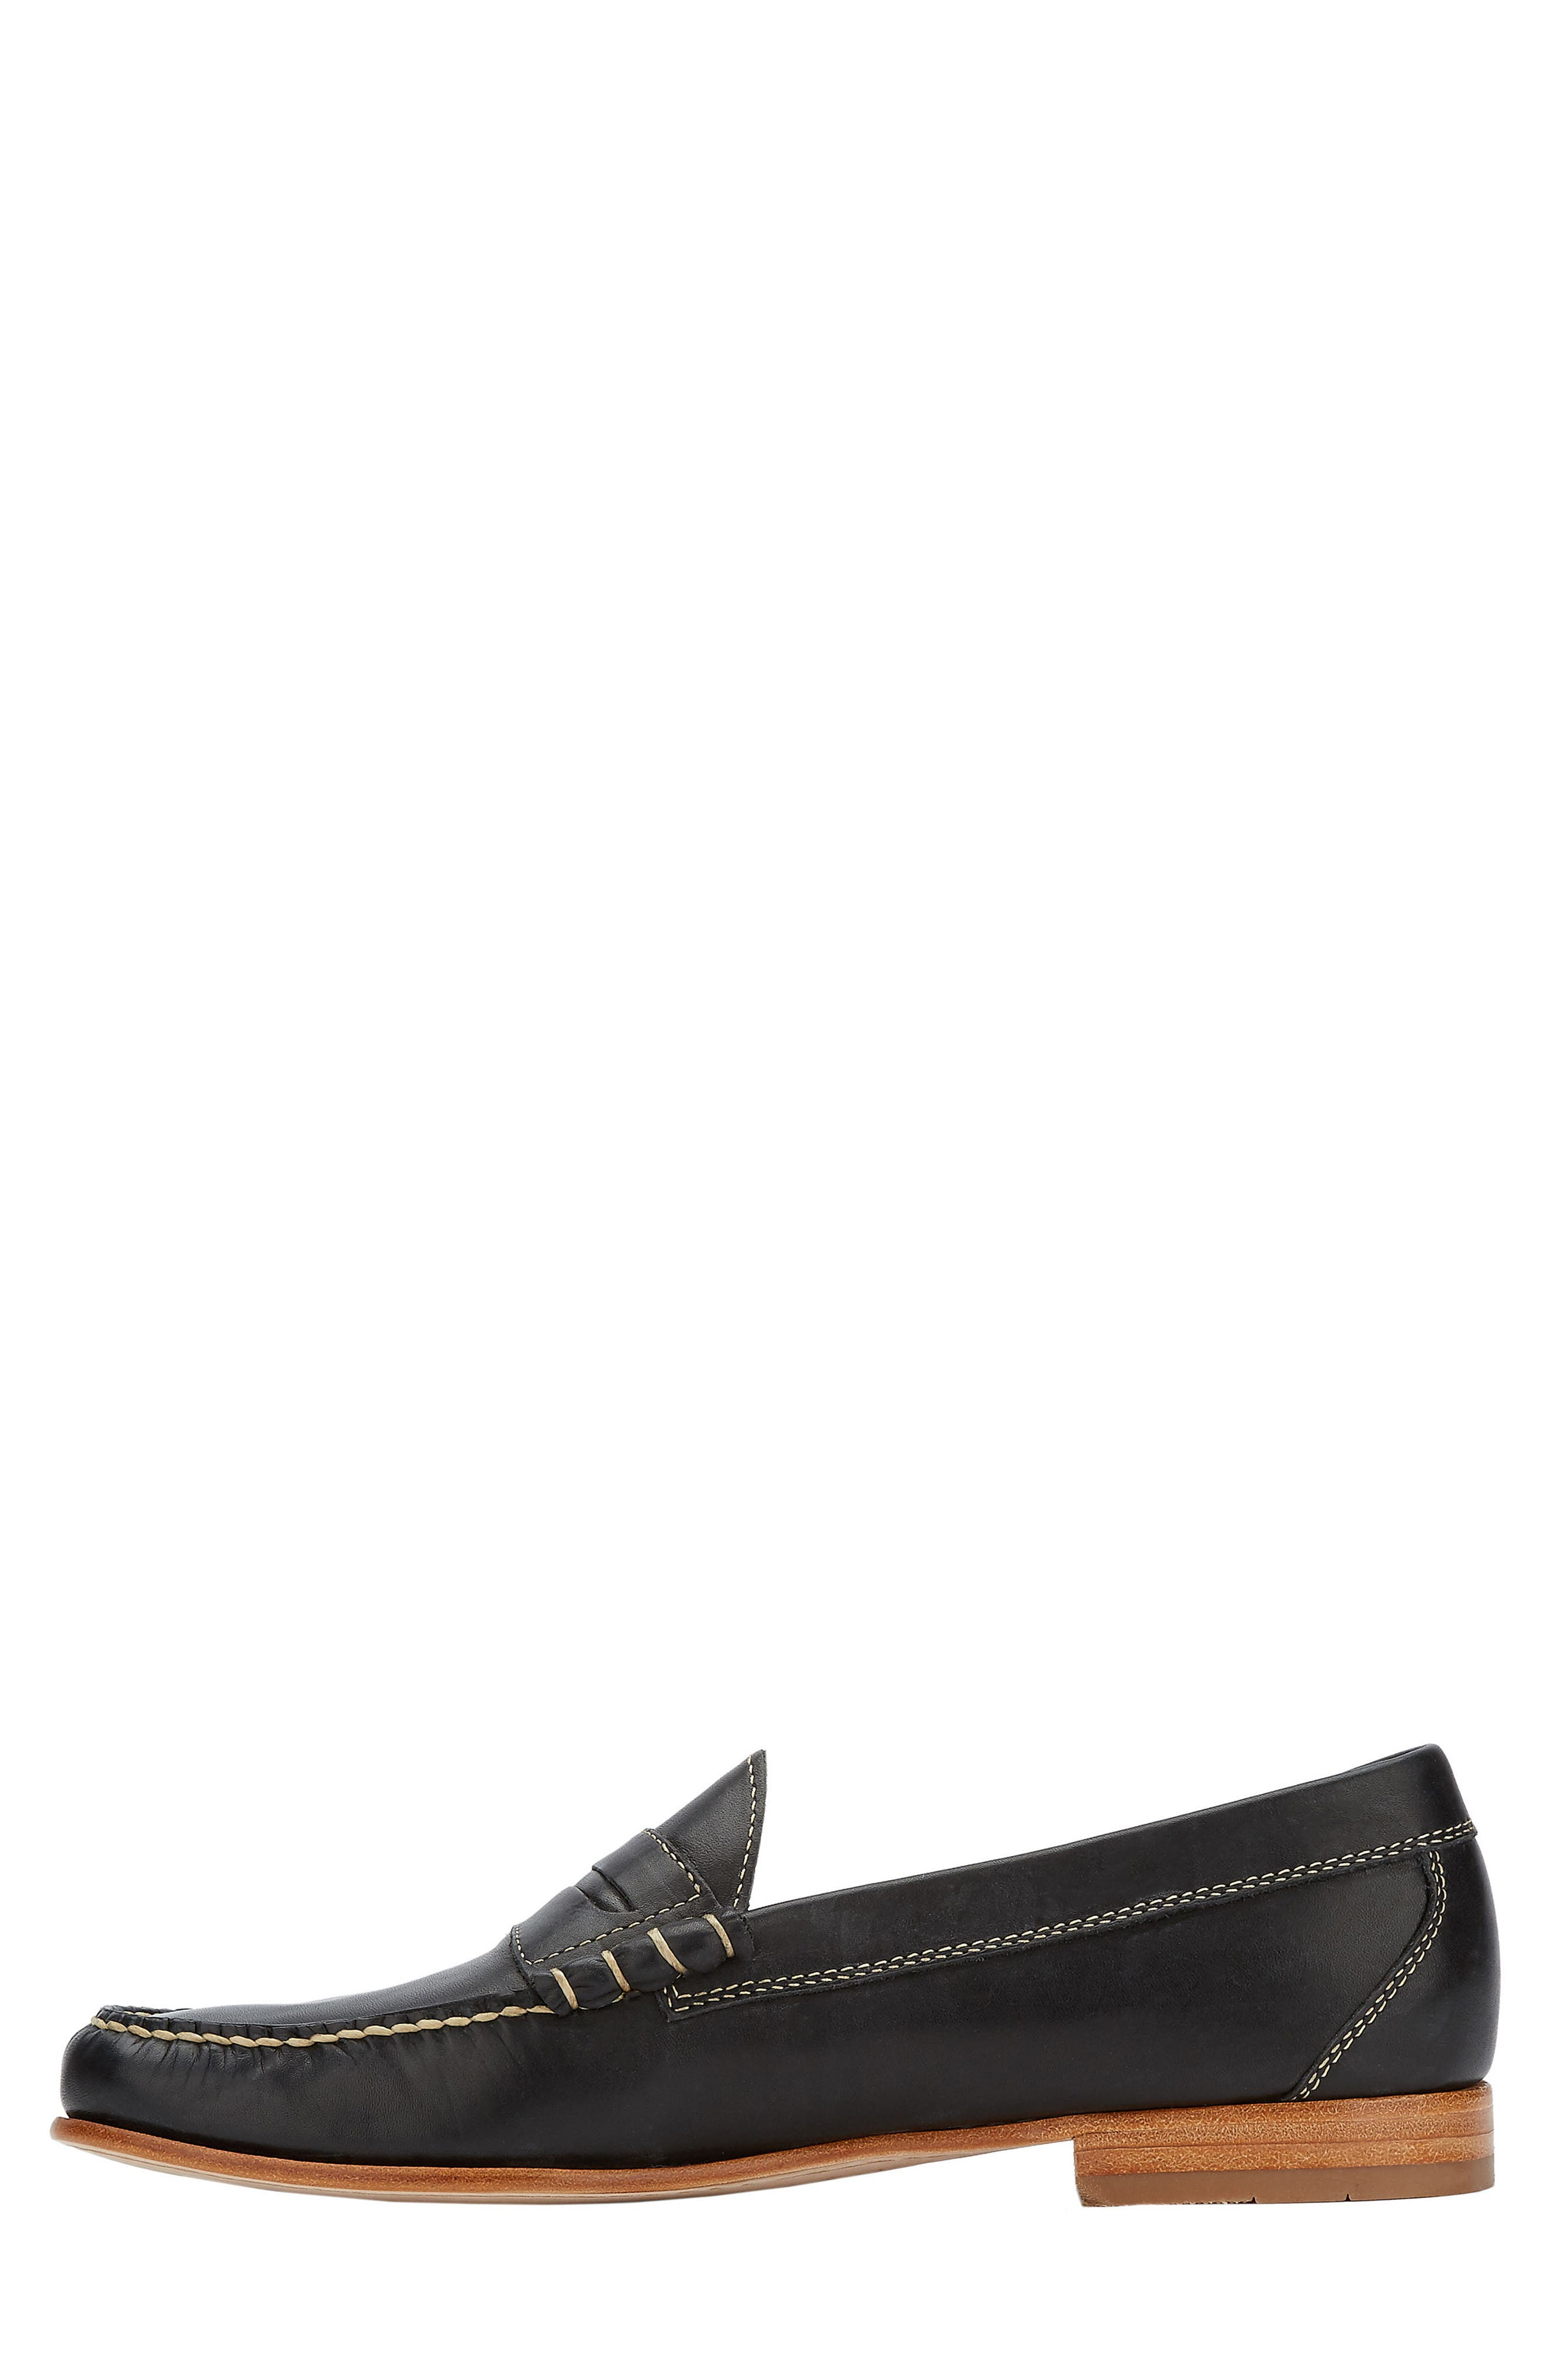 Weejuns Lambert Penny Loafer,                             Alternate thumbnail 3, color,                             001